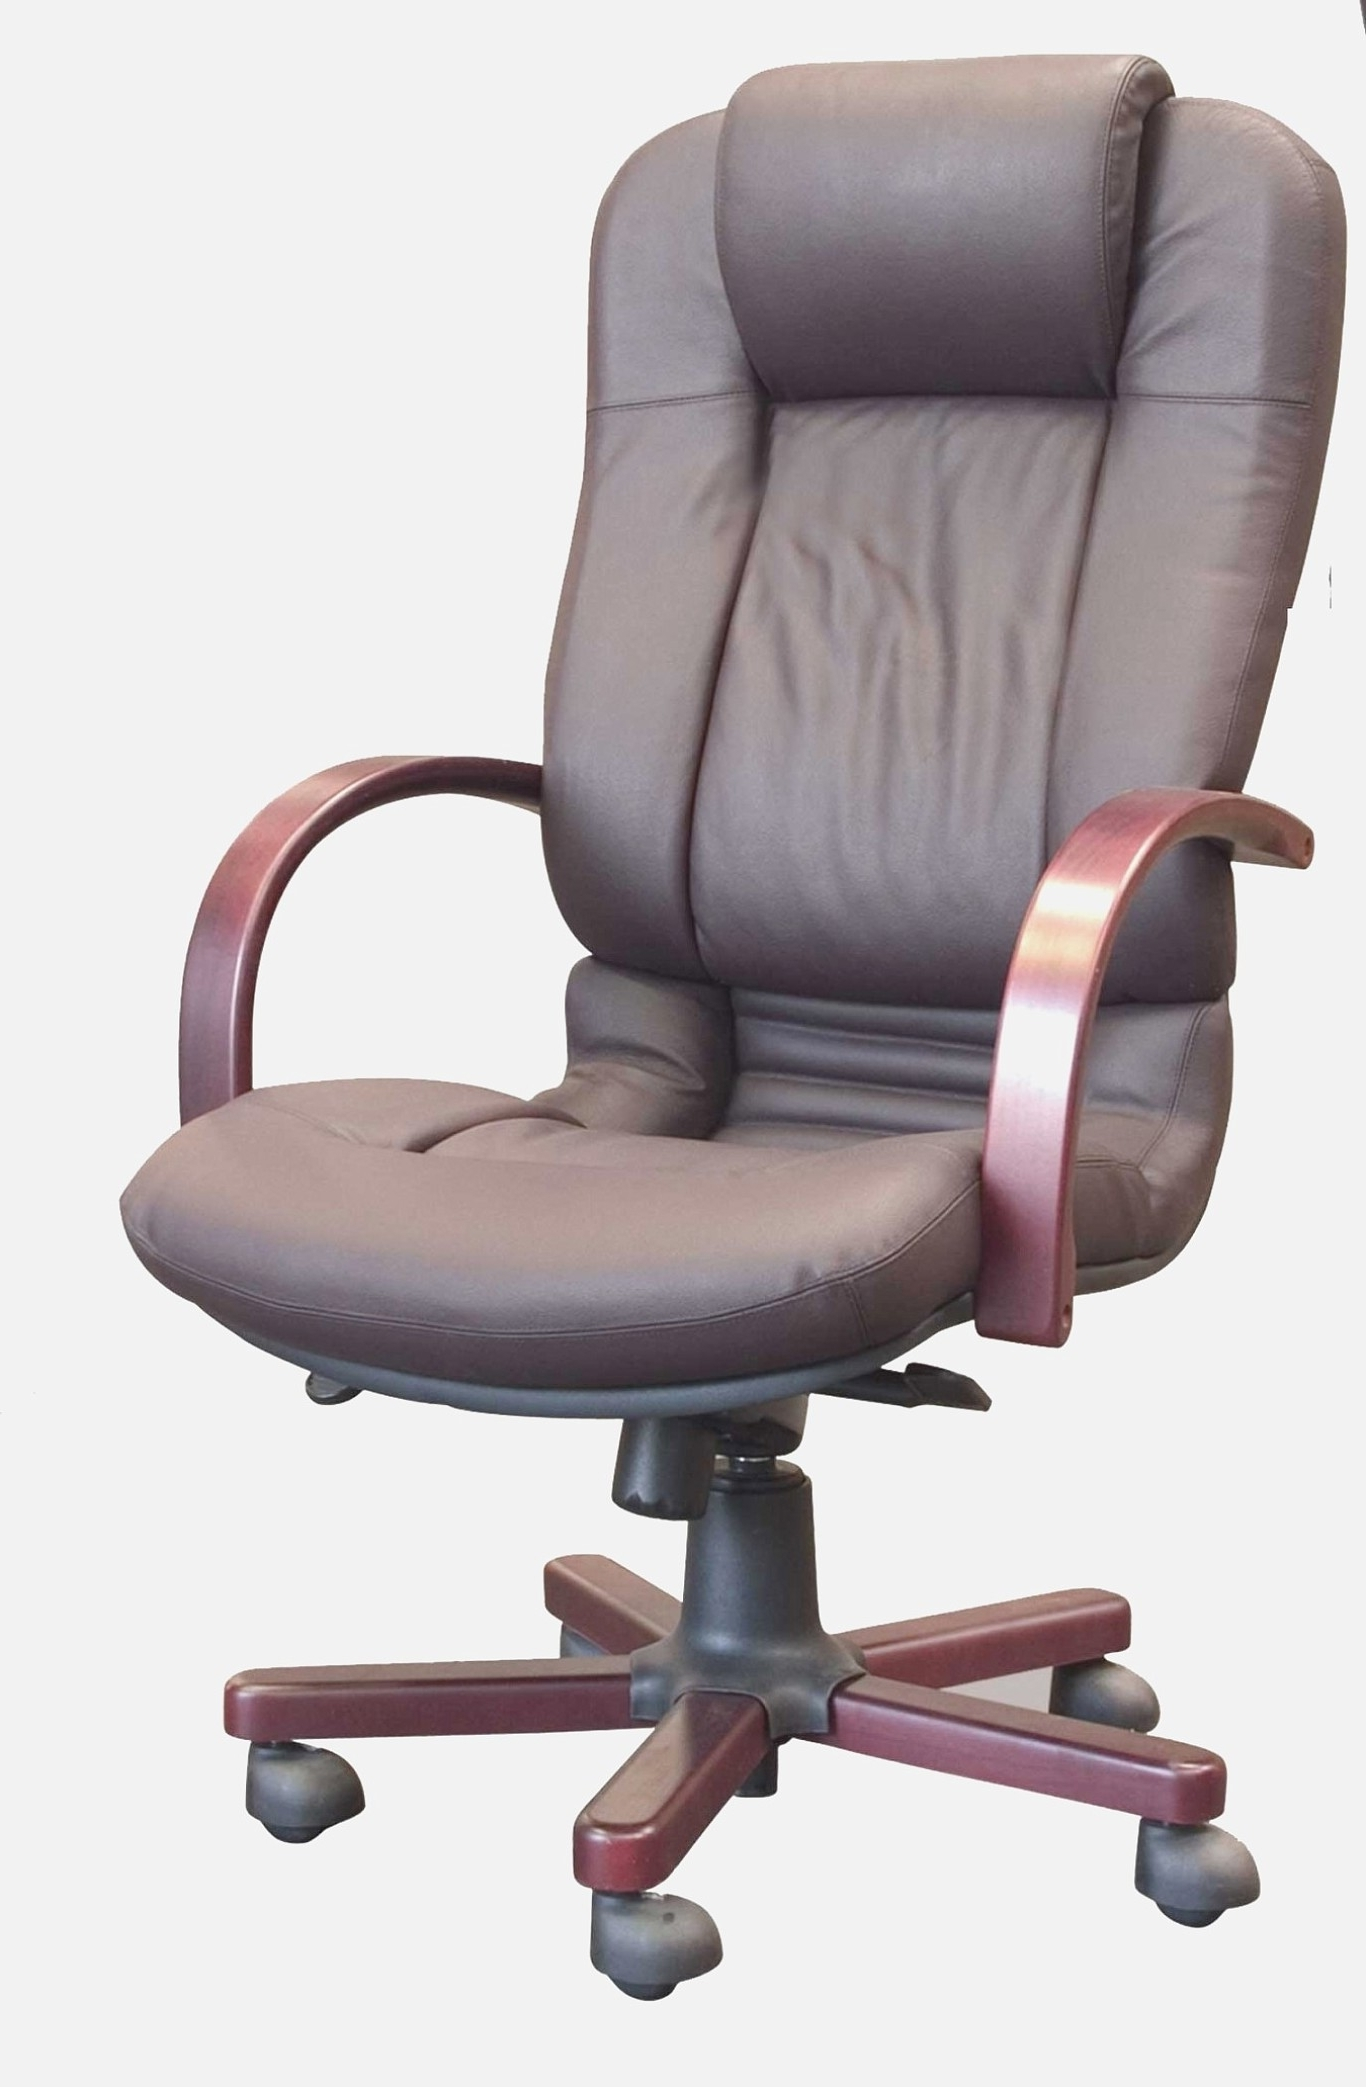 Hon Executive Office Chairs For Recent Executive Office Desk Office Furniture Visitors Chairs Where To (View 8 of 20)